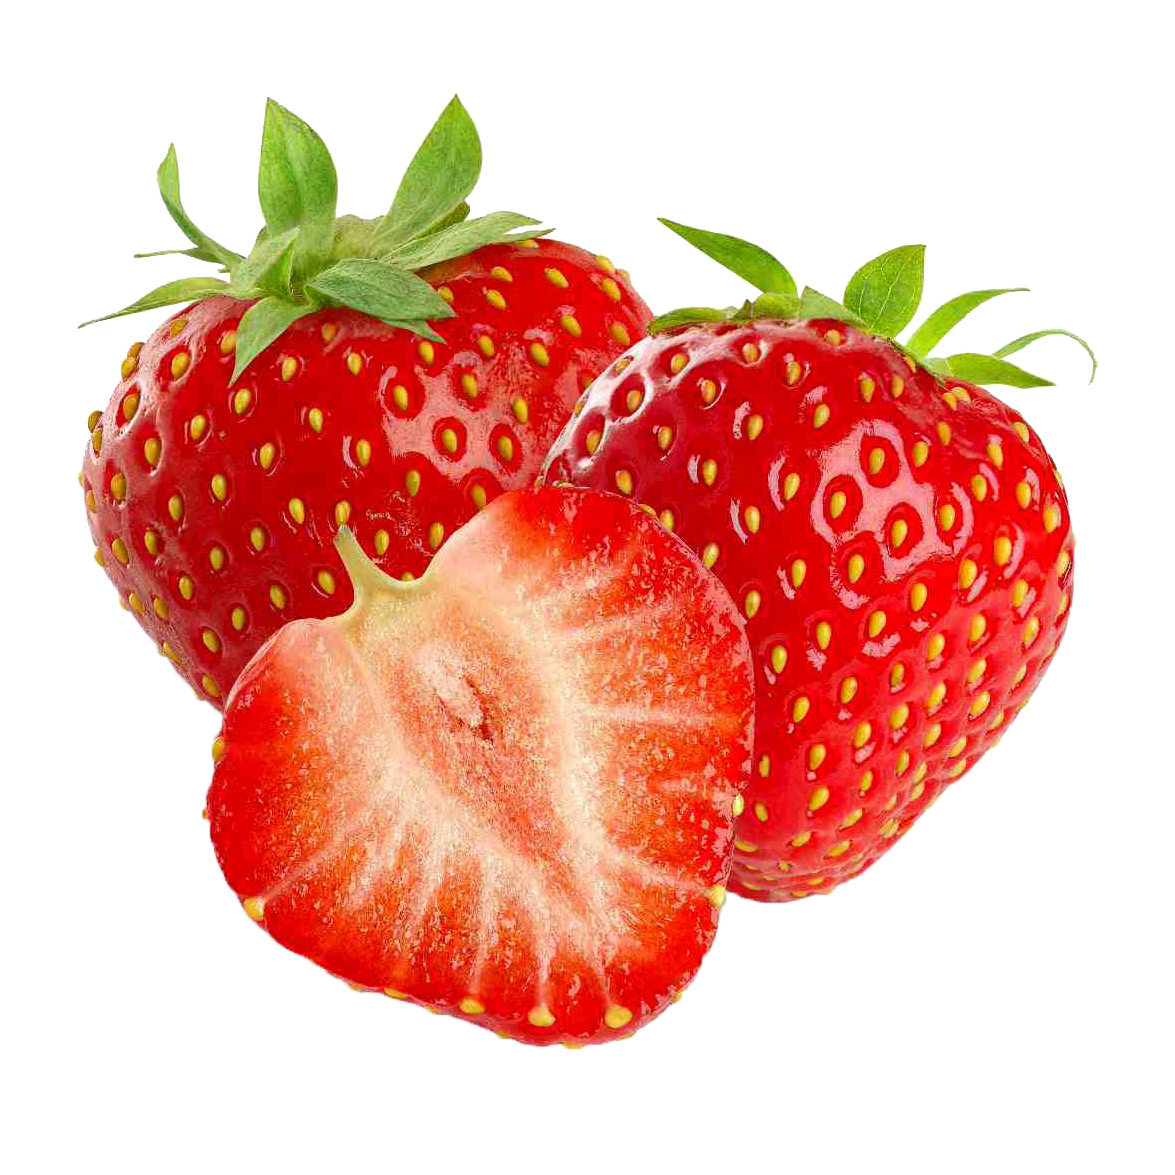 Strawberry Fruit Png image #22925